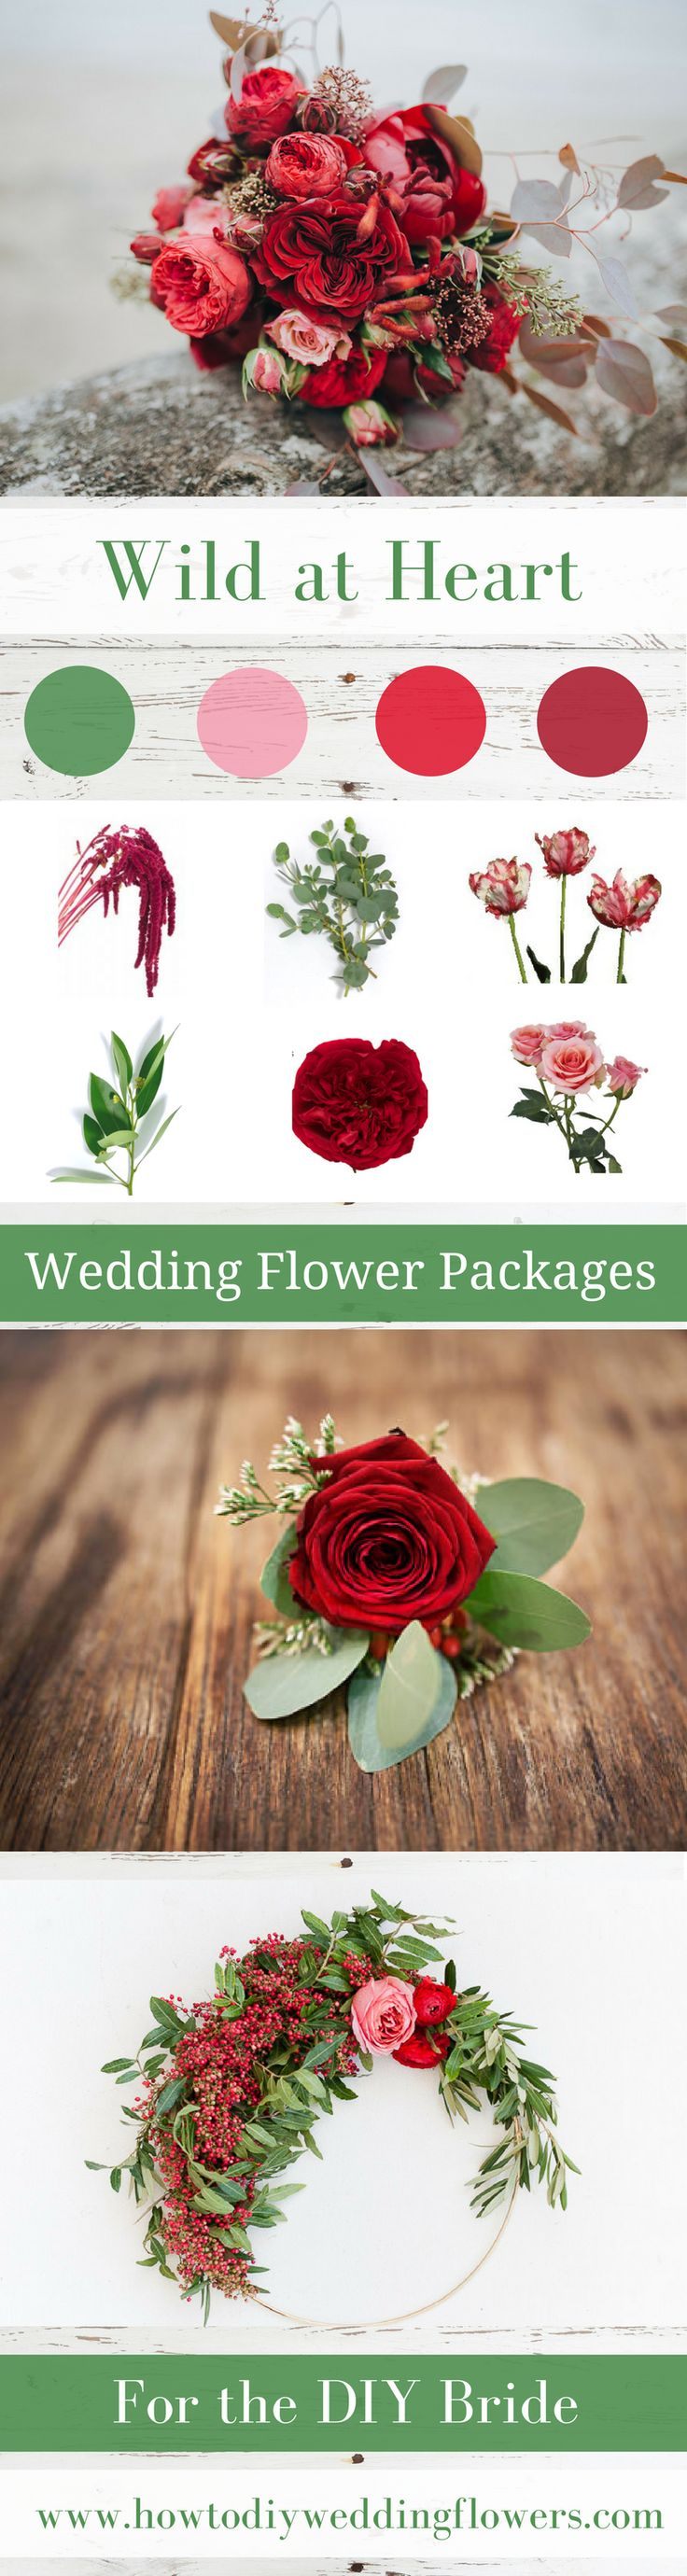 Wedding Trends 2018! RED  DIY Wedding Flower Packages! Buy Easy Complete DIY bouquet, Boutonniere & Centerpiece Flower packages online! How to make a wedding bouquet DIY wedding bouquet tutorials and instructions. #weddingflowerpackages #weddingflowers #weddingtrends